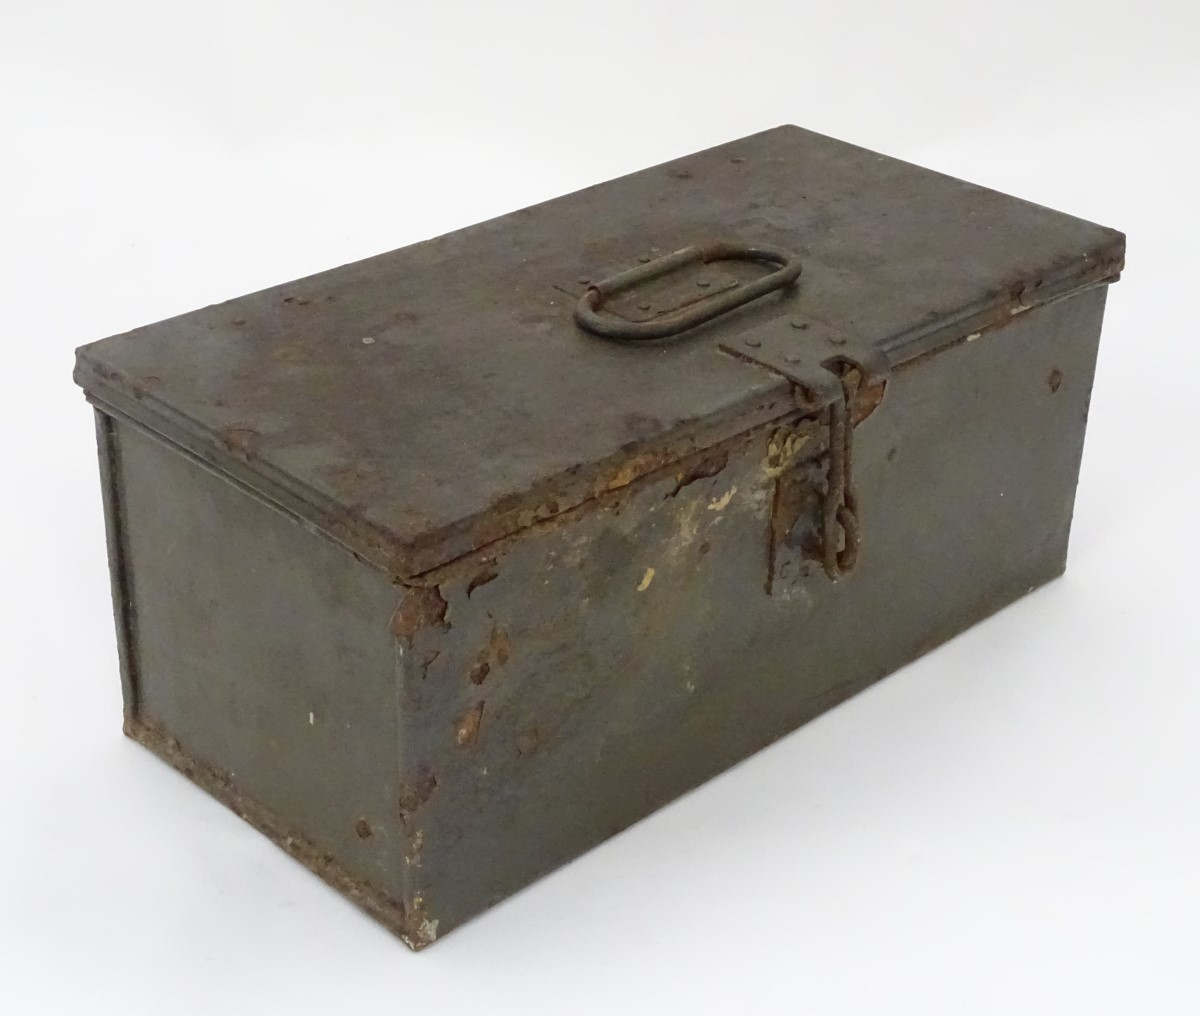 Lot 17 - A military document box CONDITION: Please Note - we do not make reference to the